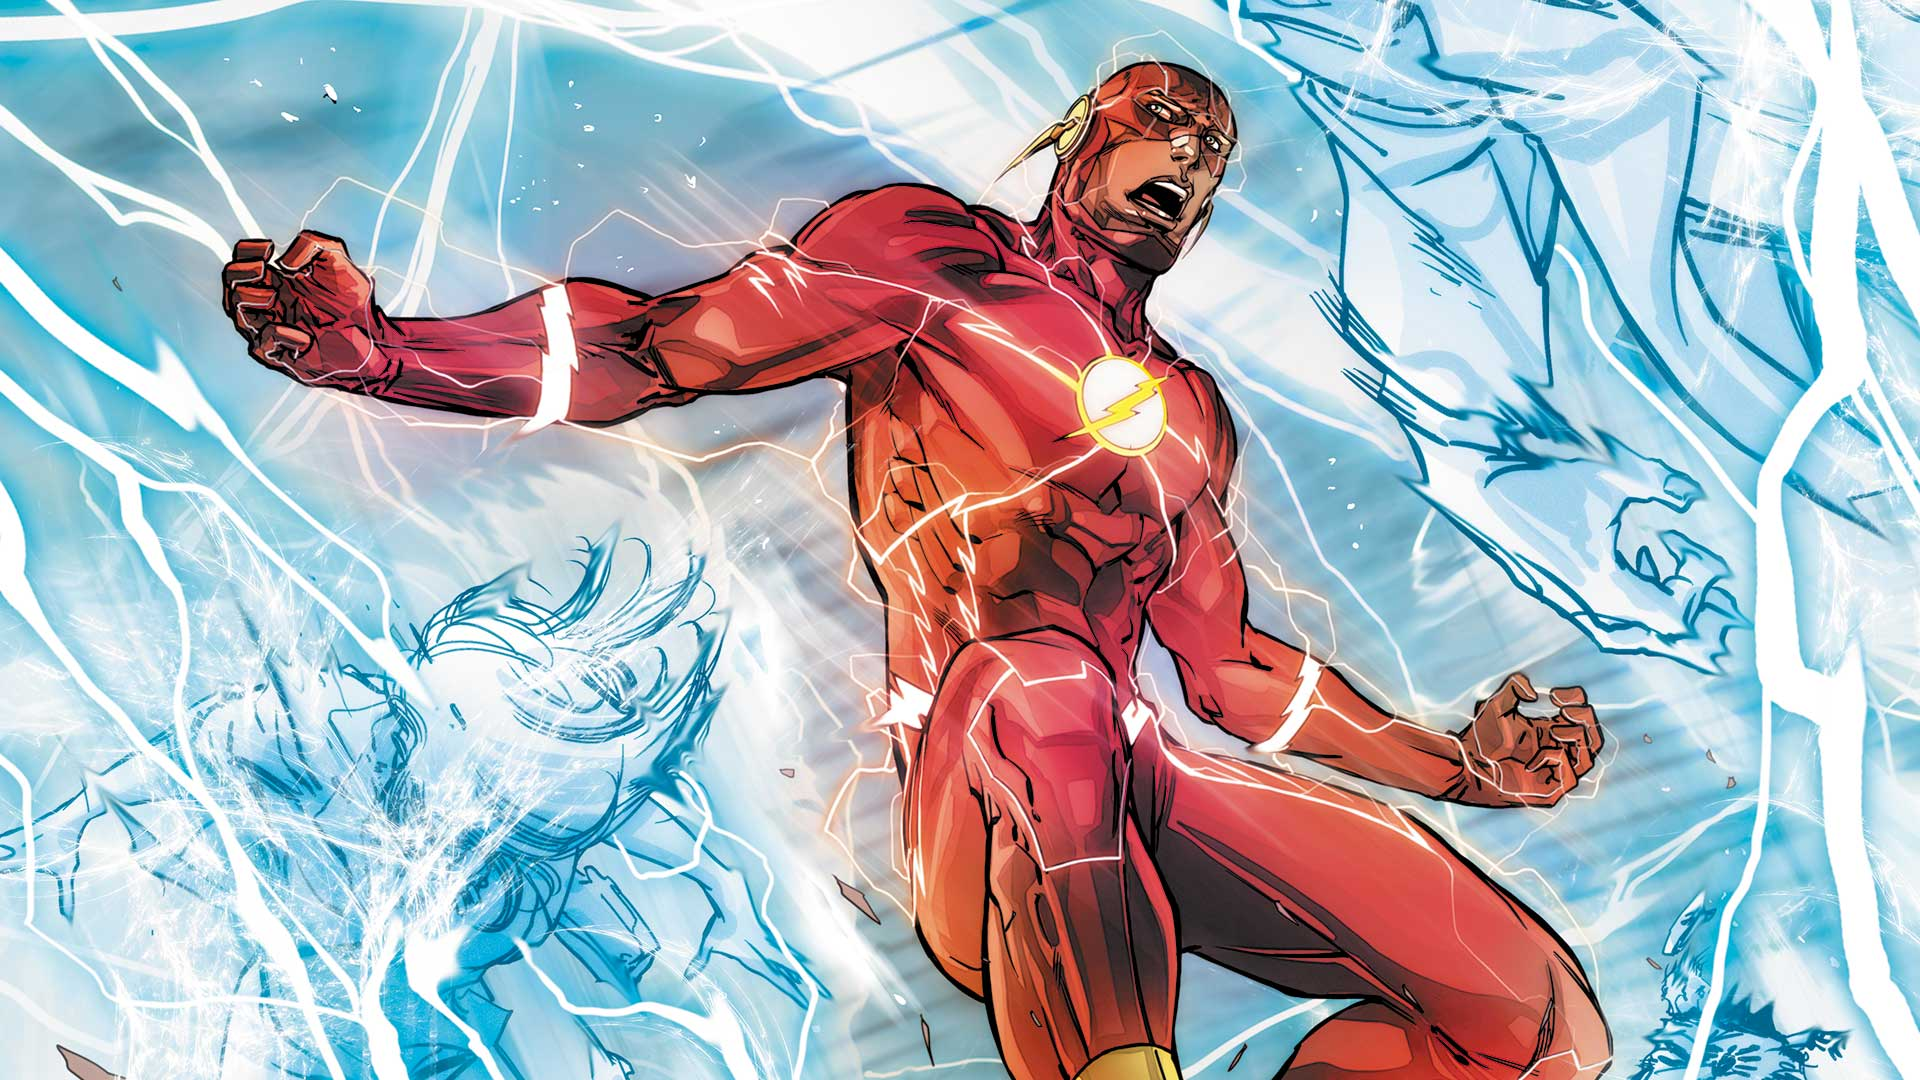 The Flash #3 Review